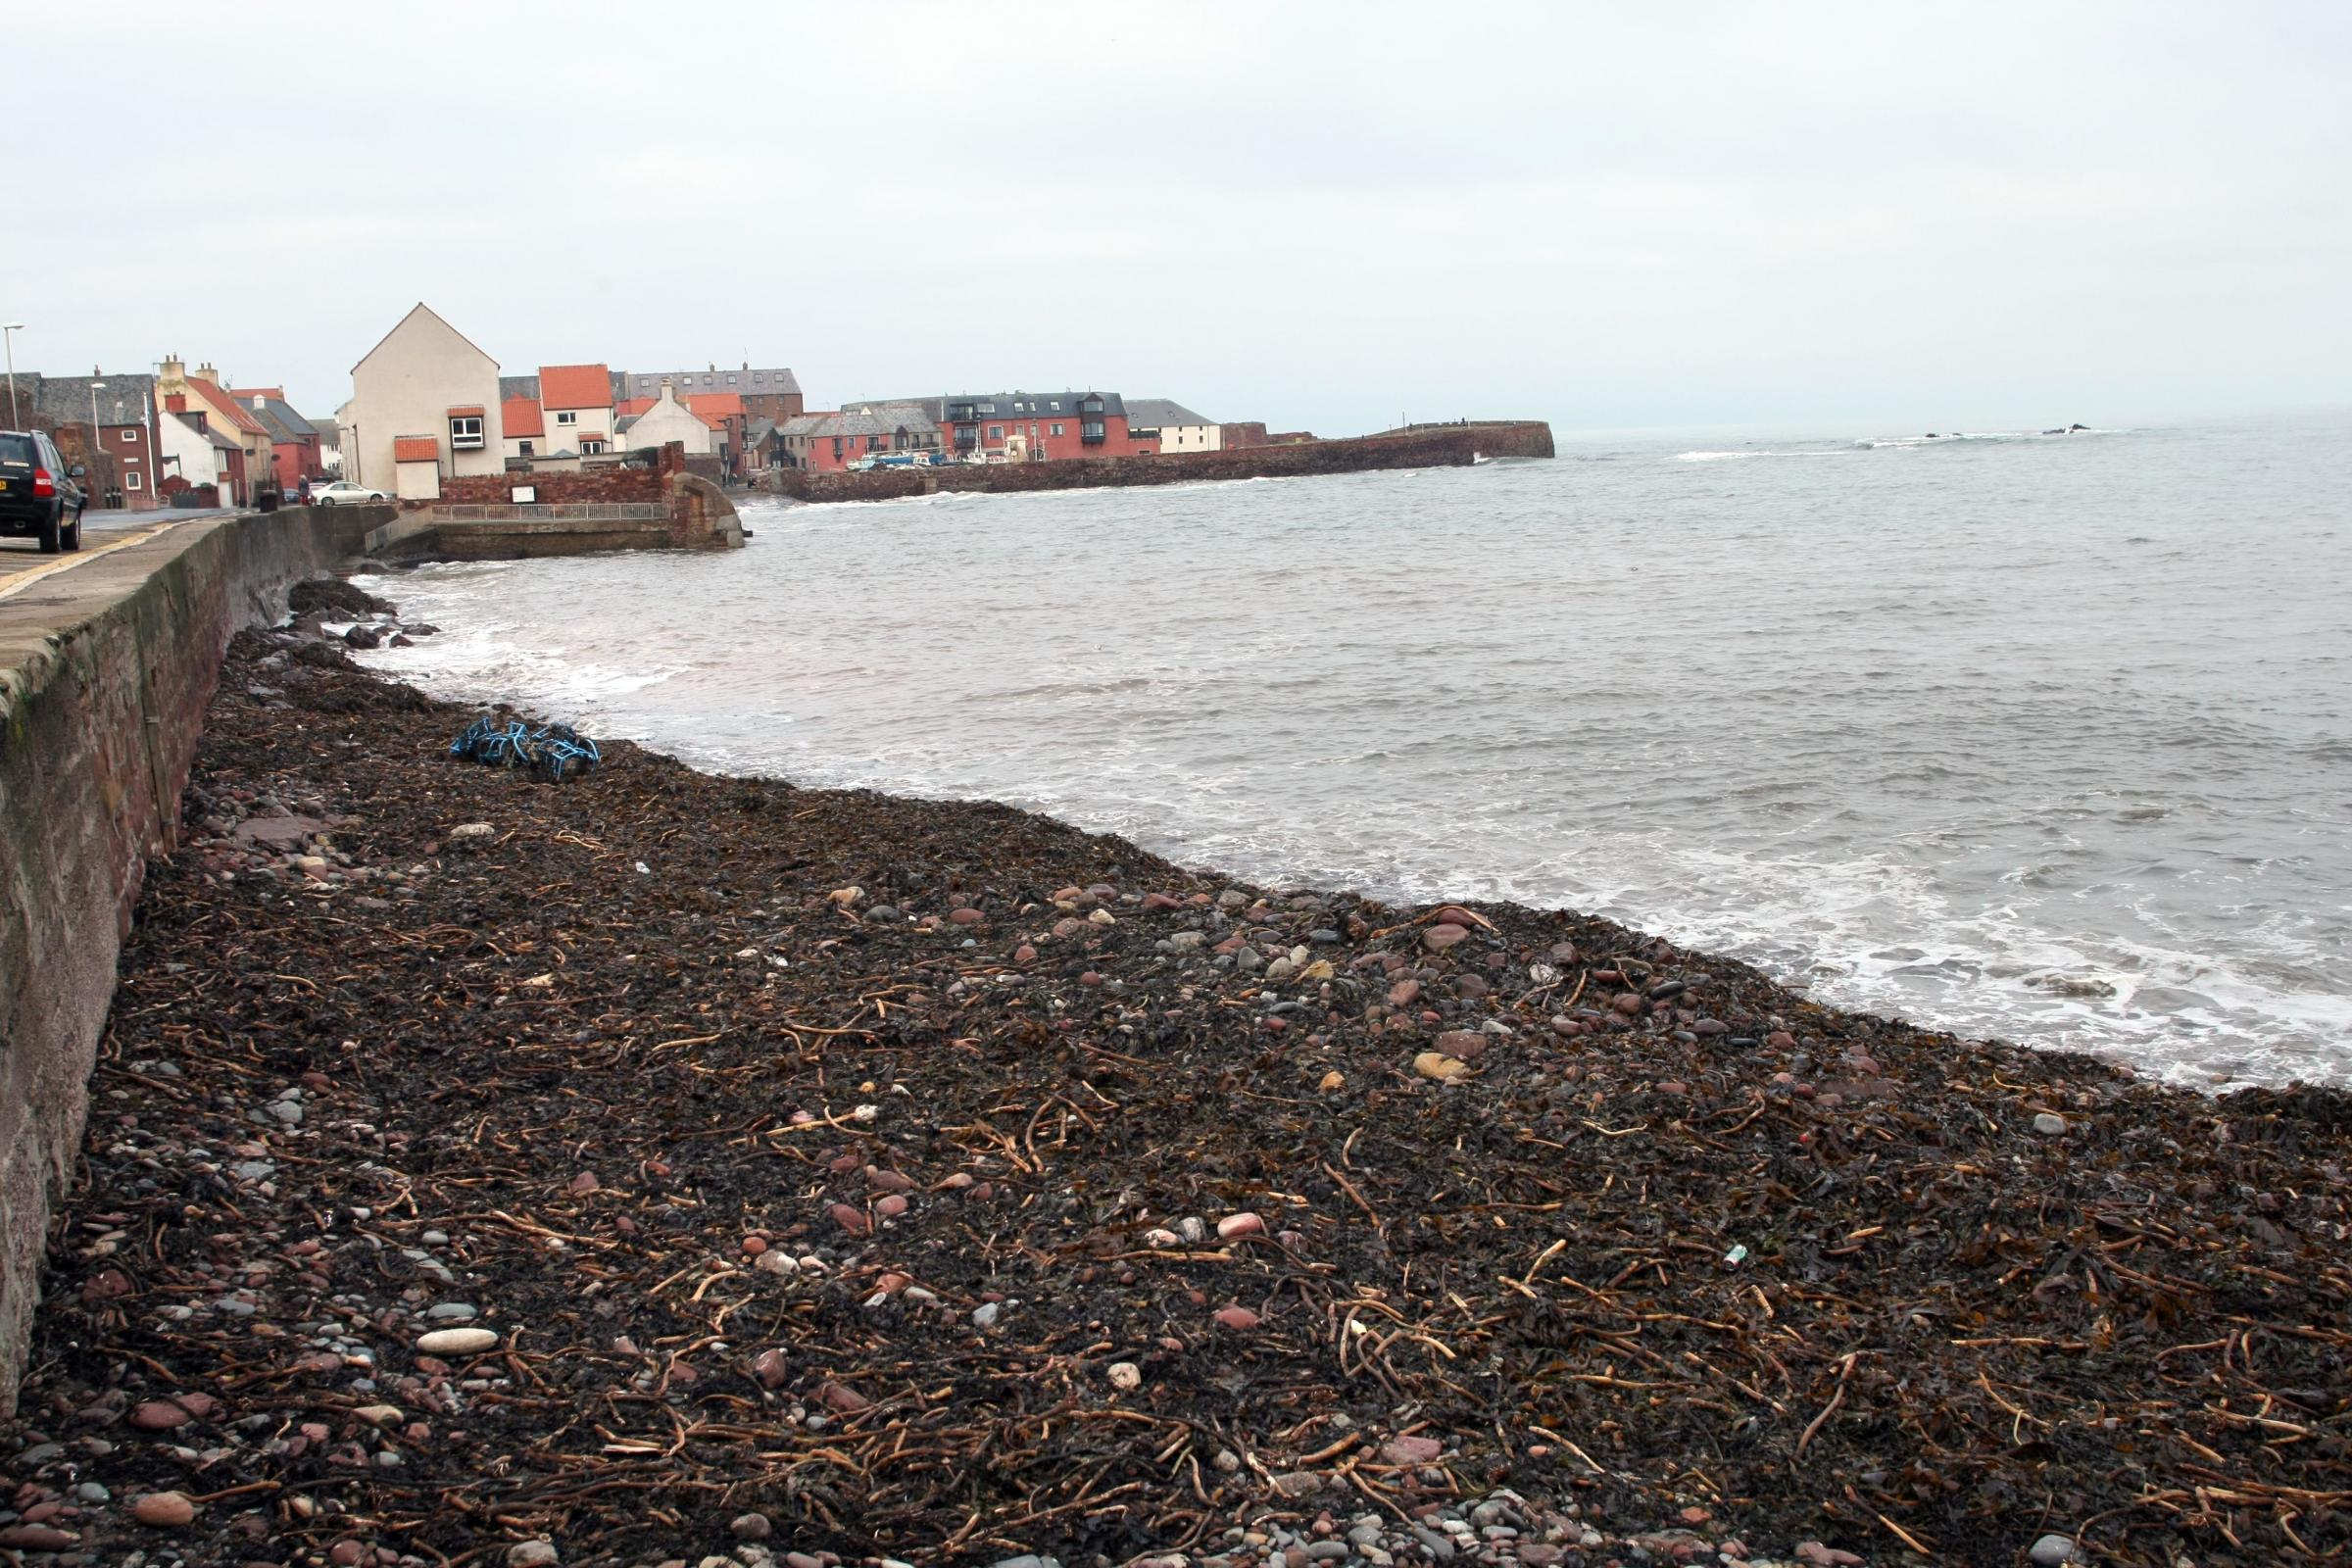 Work to reinvigorate Dunbar's East Beach is being weighed up by East Lothian Council's planning department